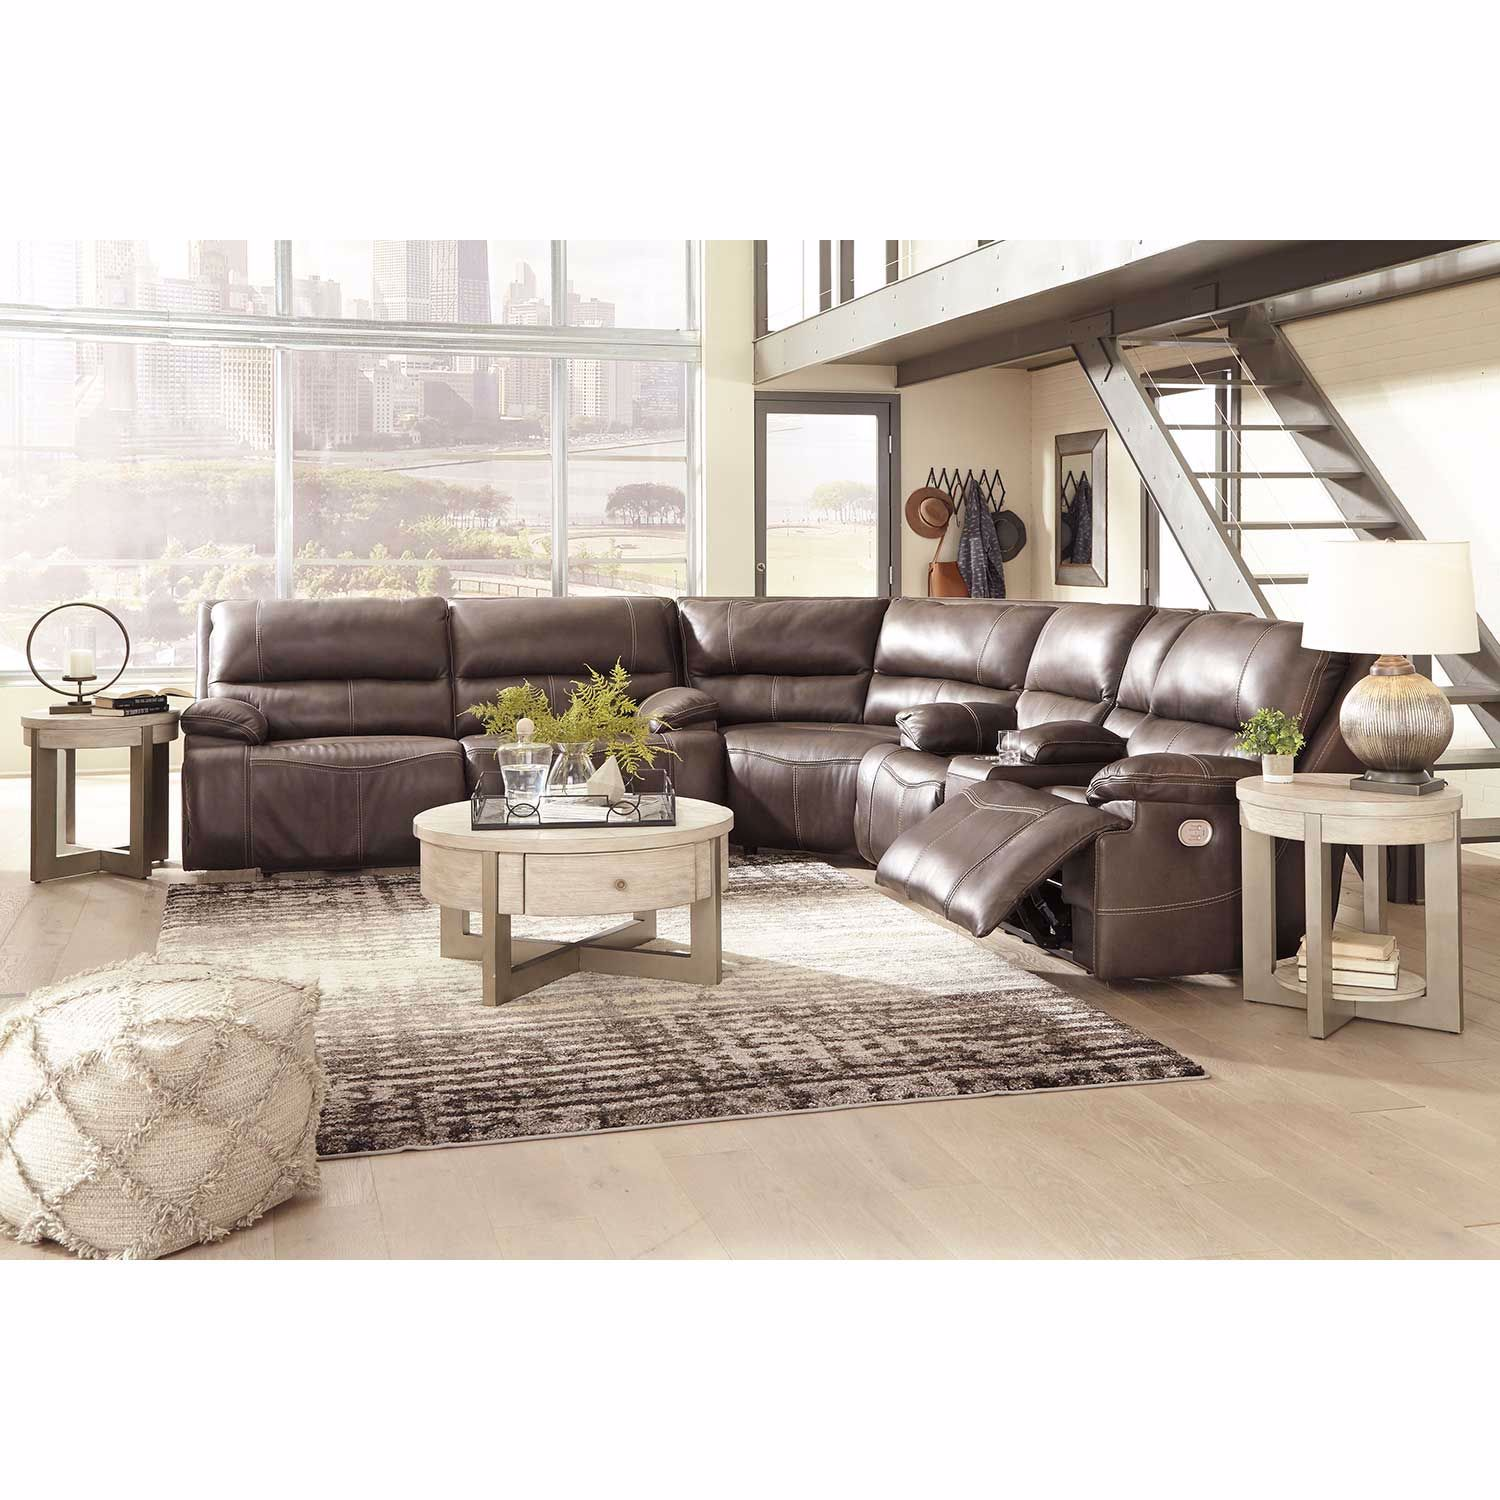 Picture of Ricmen Walnut 3 Piece Italian Leather Power Reclining Sectional with Adjustable Headrest